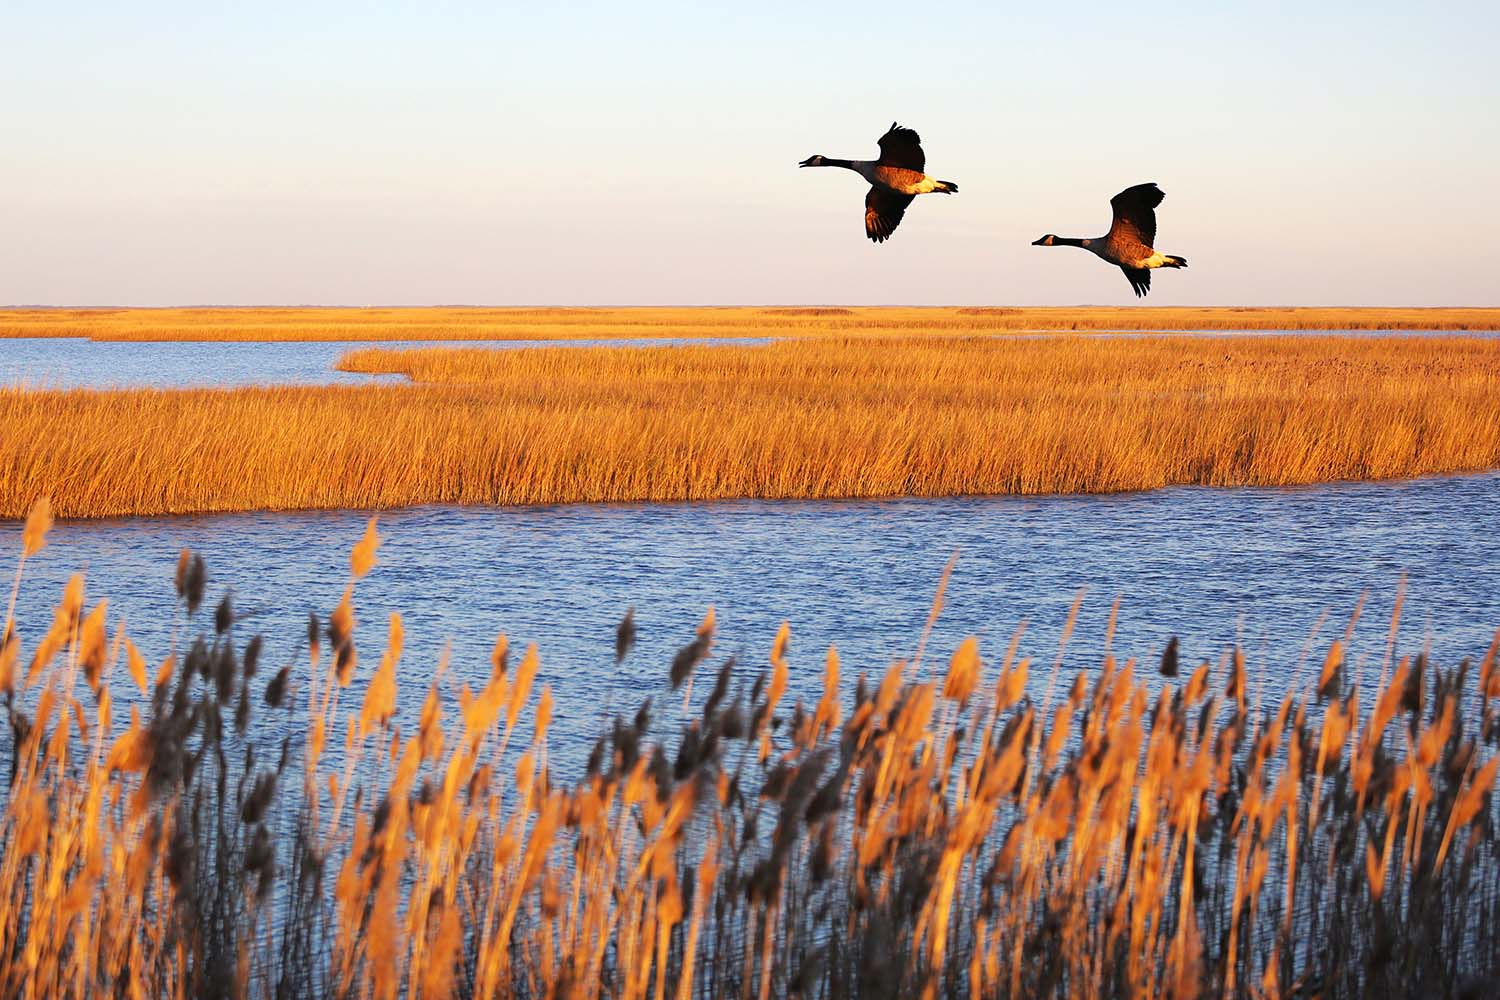 Canada geese in migration at Bombay Hook National Wildlife Refuge, Delaware, USA